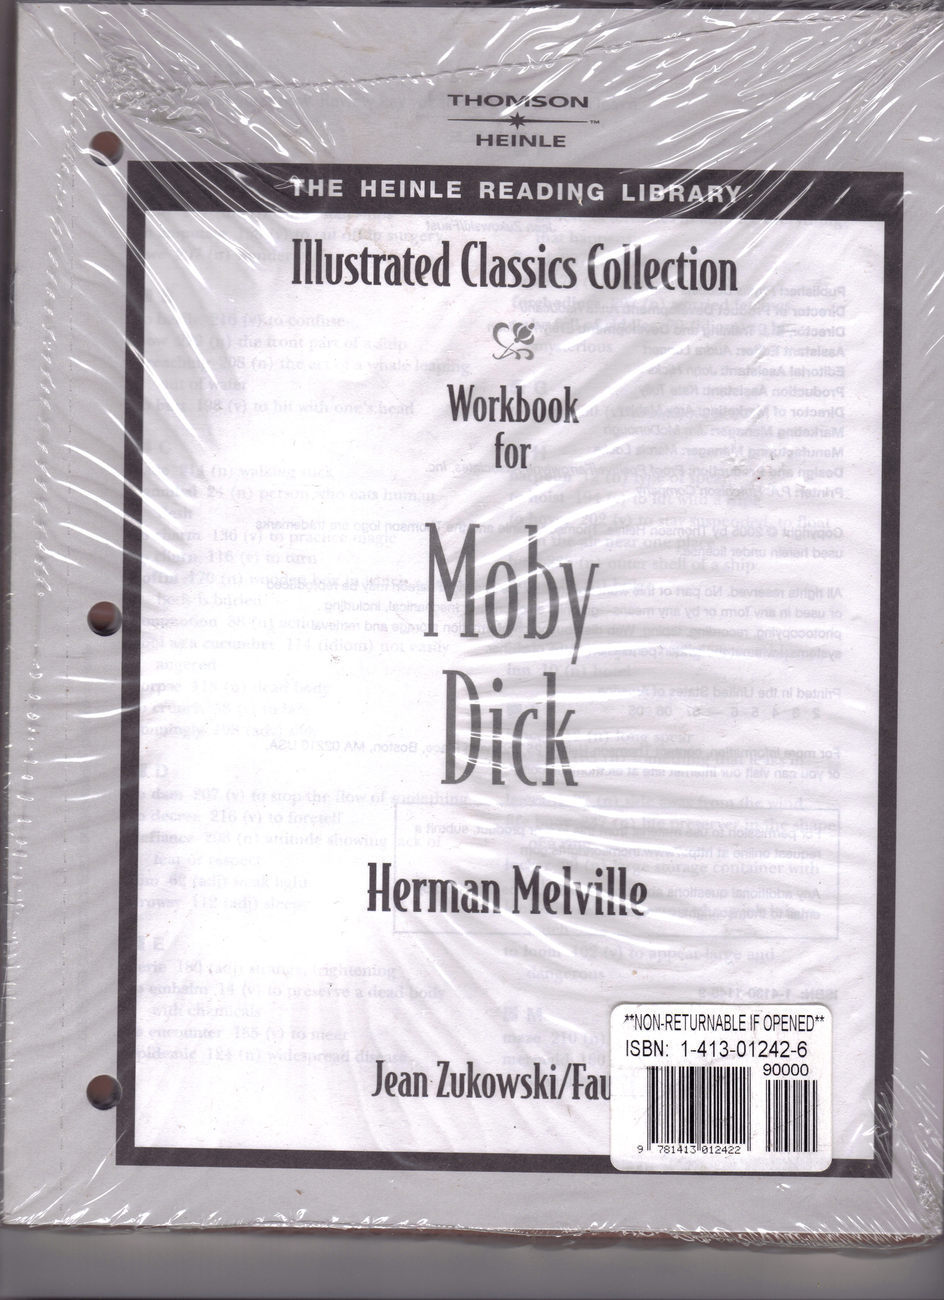 Moby dick workbook